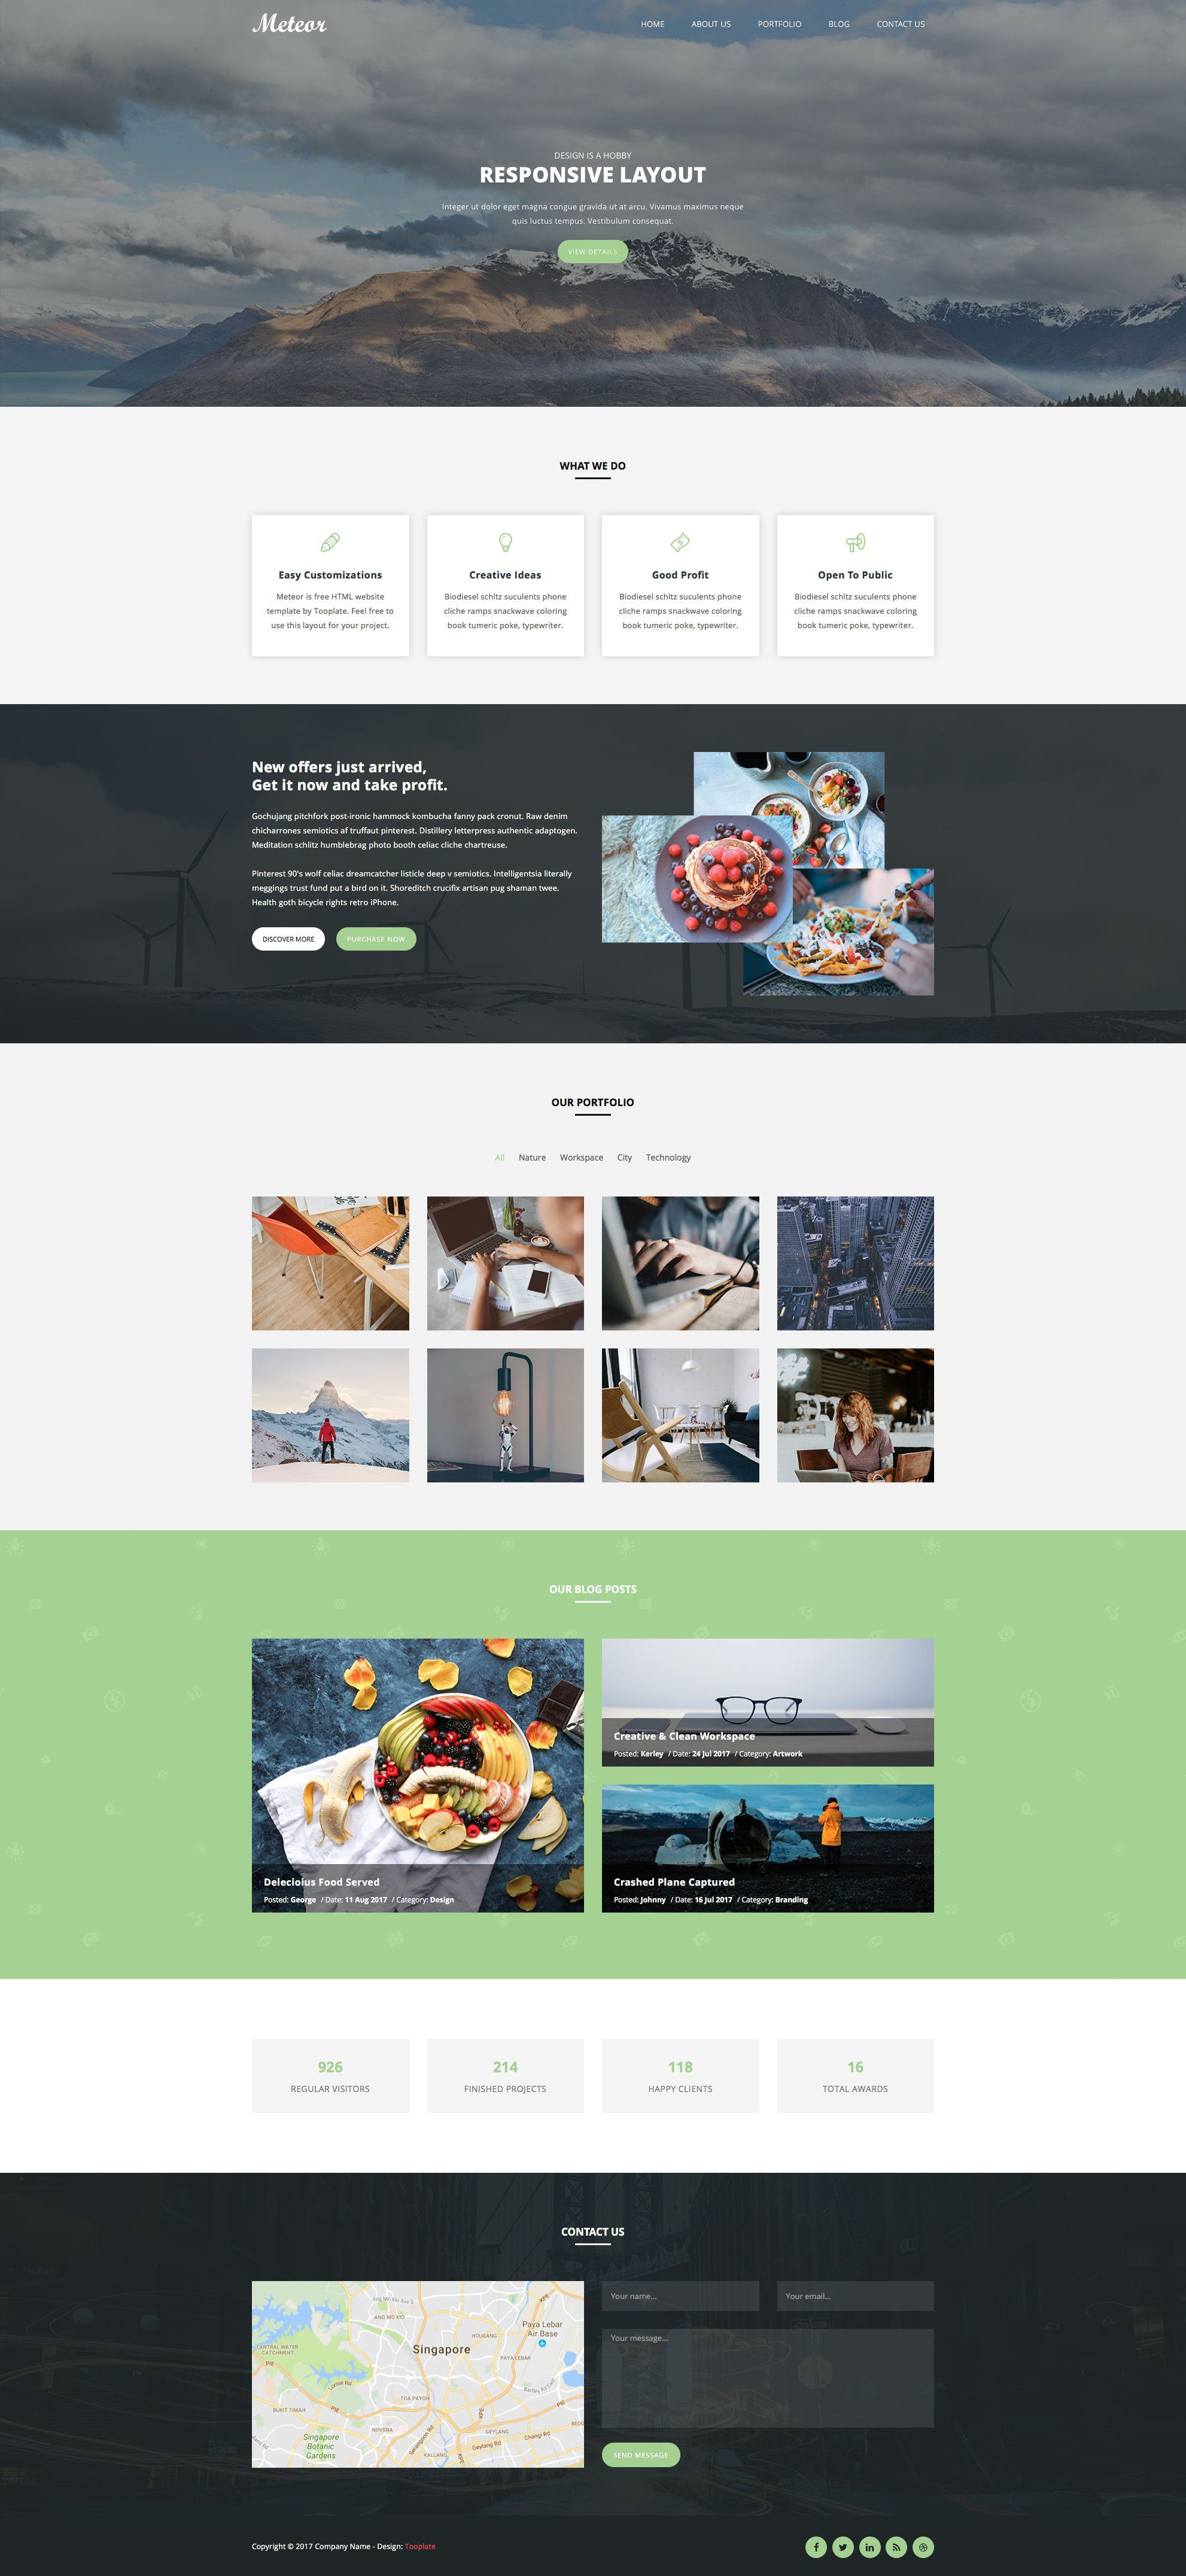 005 Awesome One Page Website Template Html5 Free Download Highest Clarity  ParallaxFull